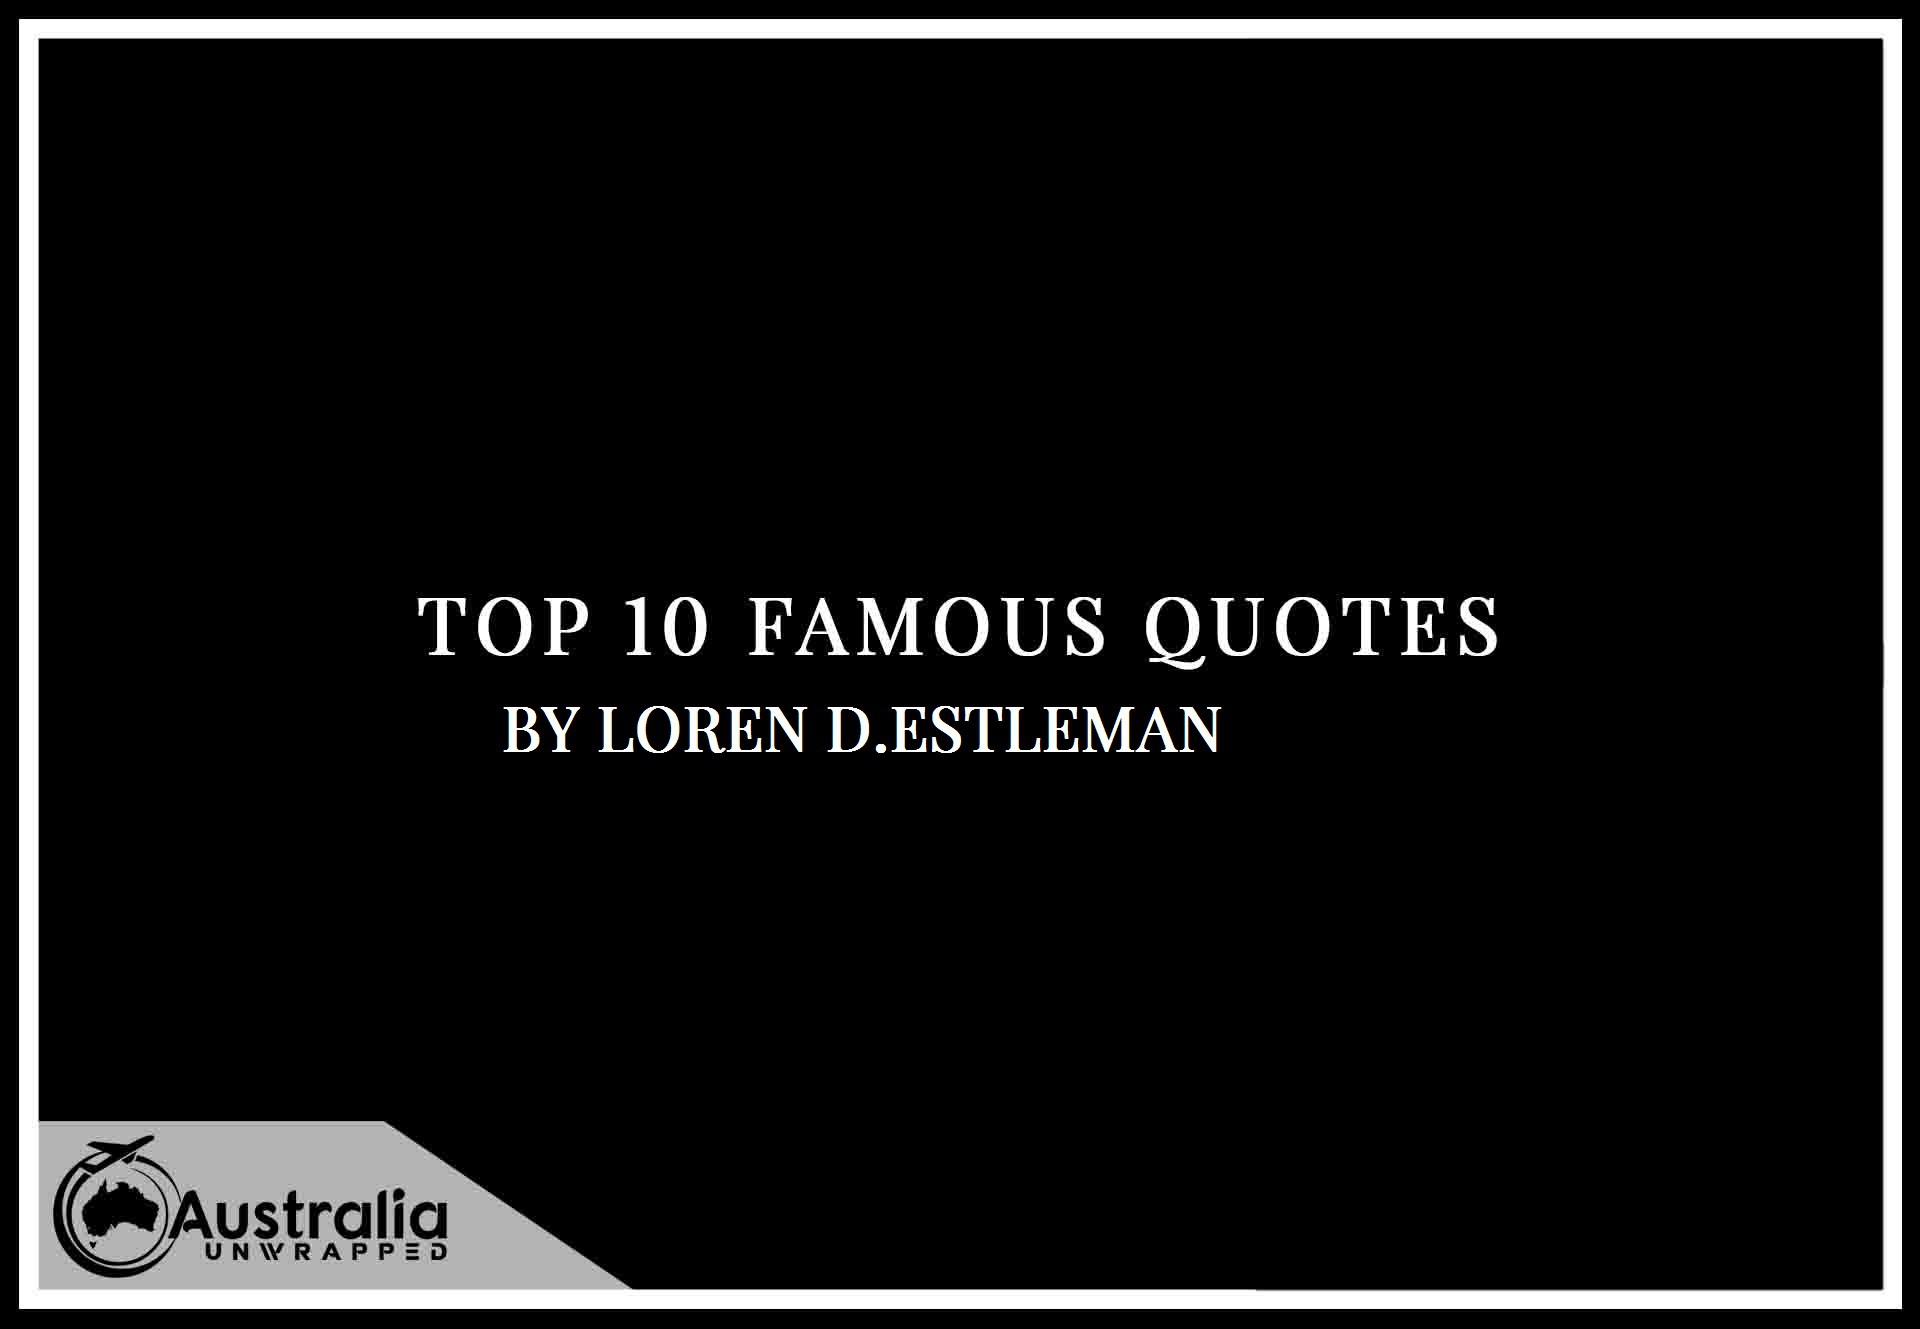 Loren D. Estleman's Top 10 Popular and Famous Quotes